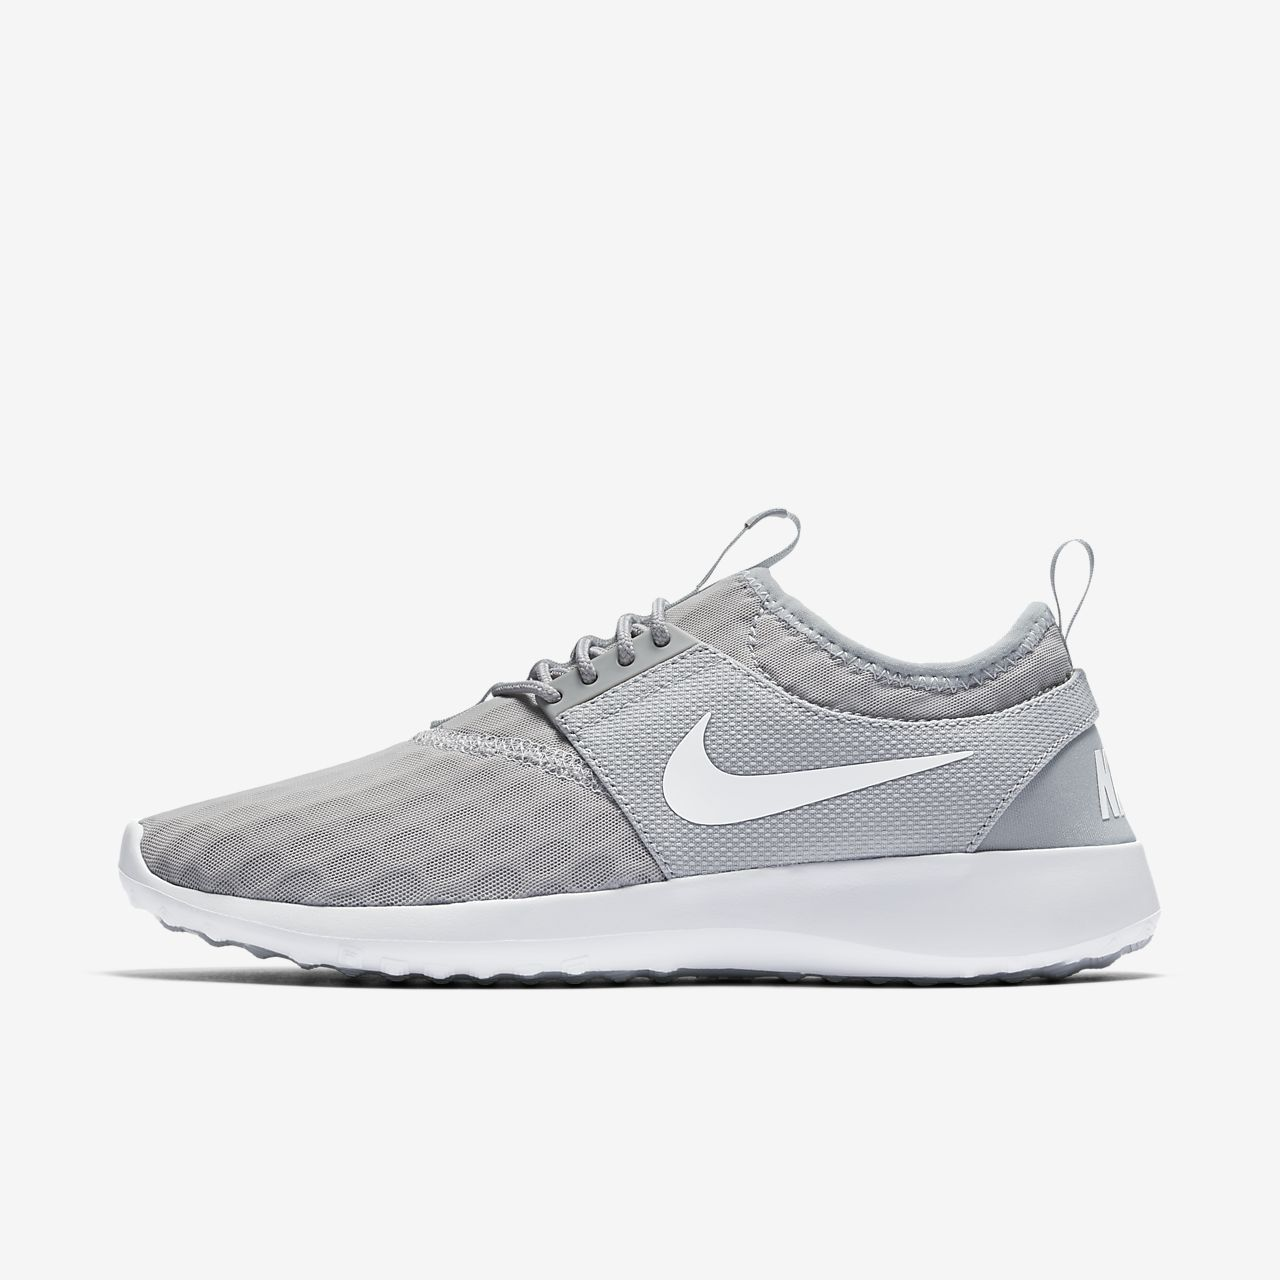 Low Resolution Nike Juvenate Women s Shoe Nike Juvenate Women s Shoe